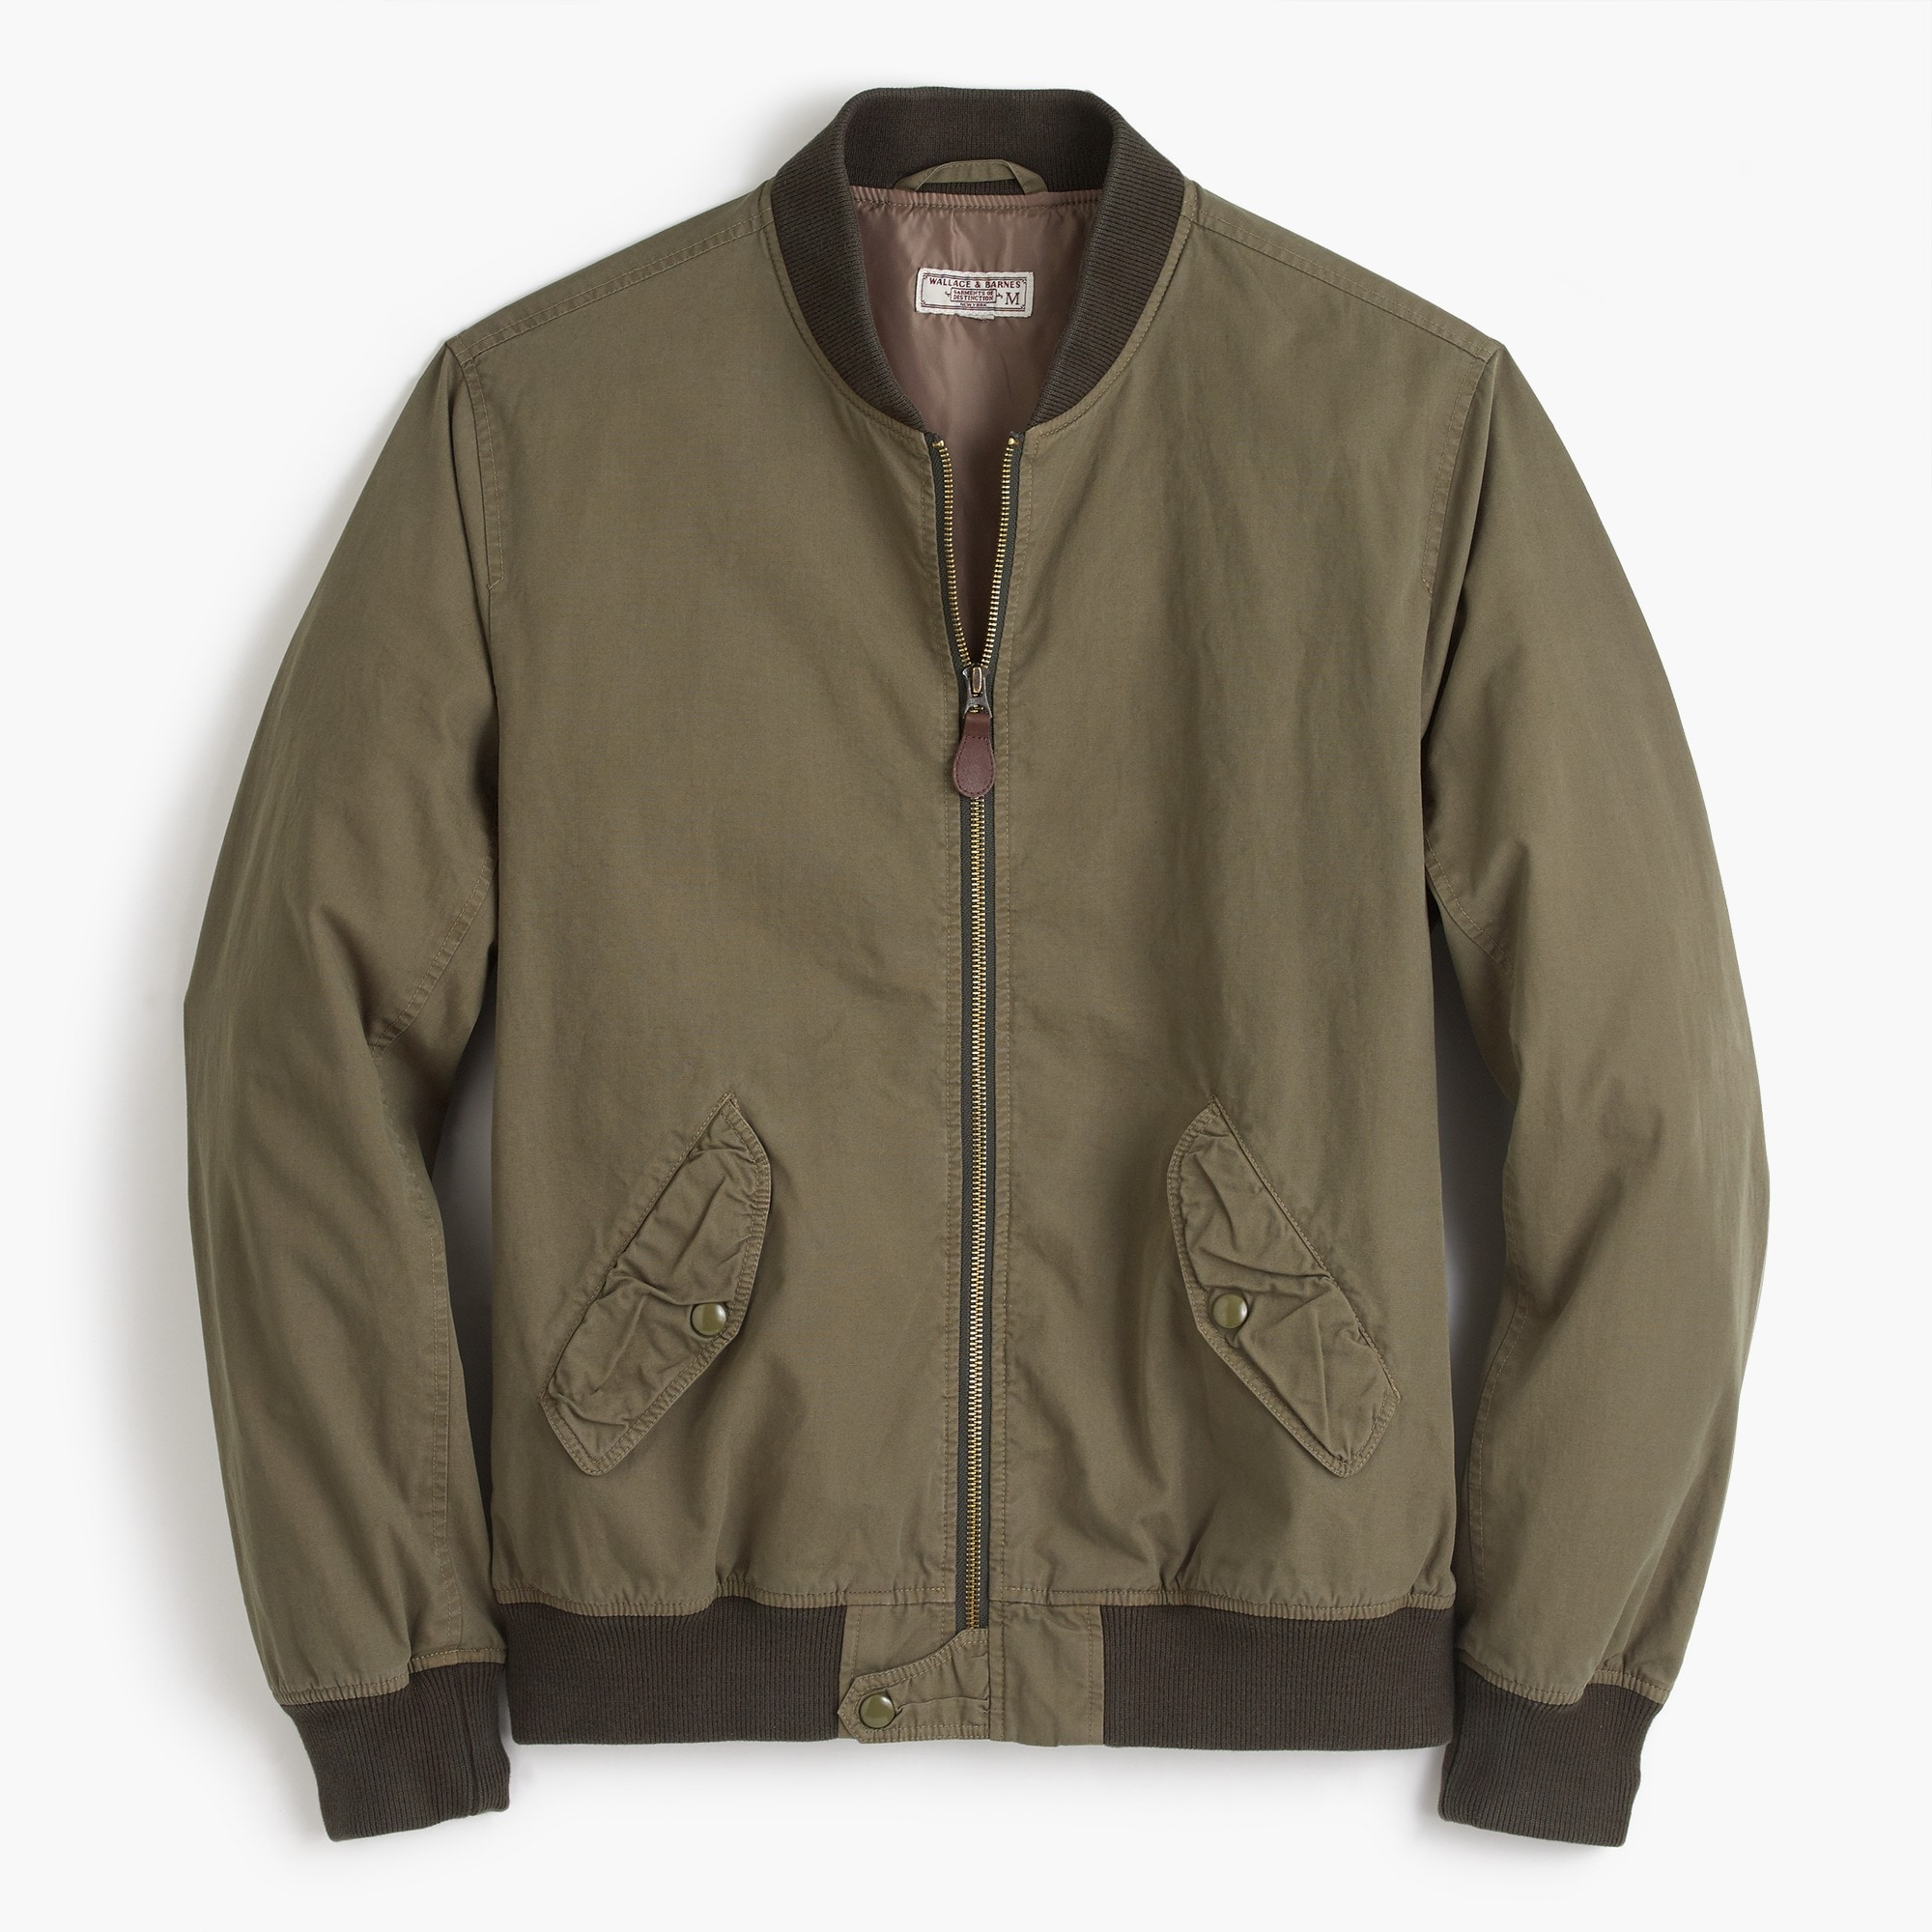 Tall Wallace & Barnes garment-dyed cotton MA-1 bomber jacket